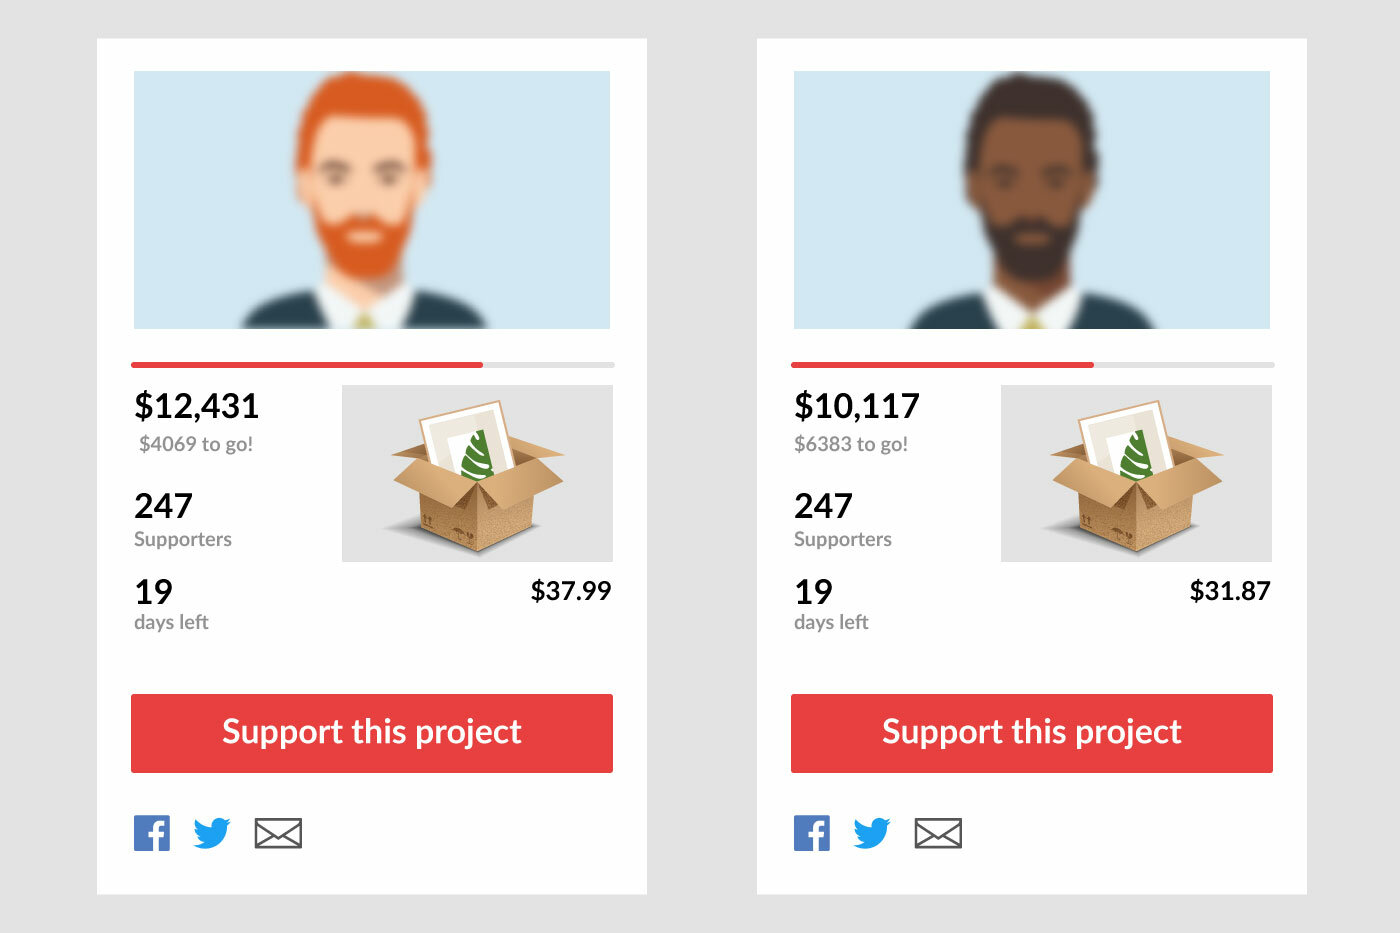 Racial bias matters on crowdfunding sites like Indiegogo, Kickstarter, and GoFundMe